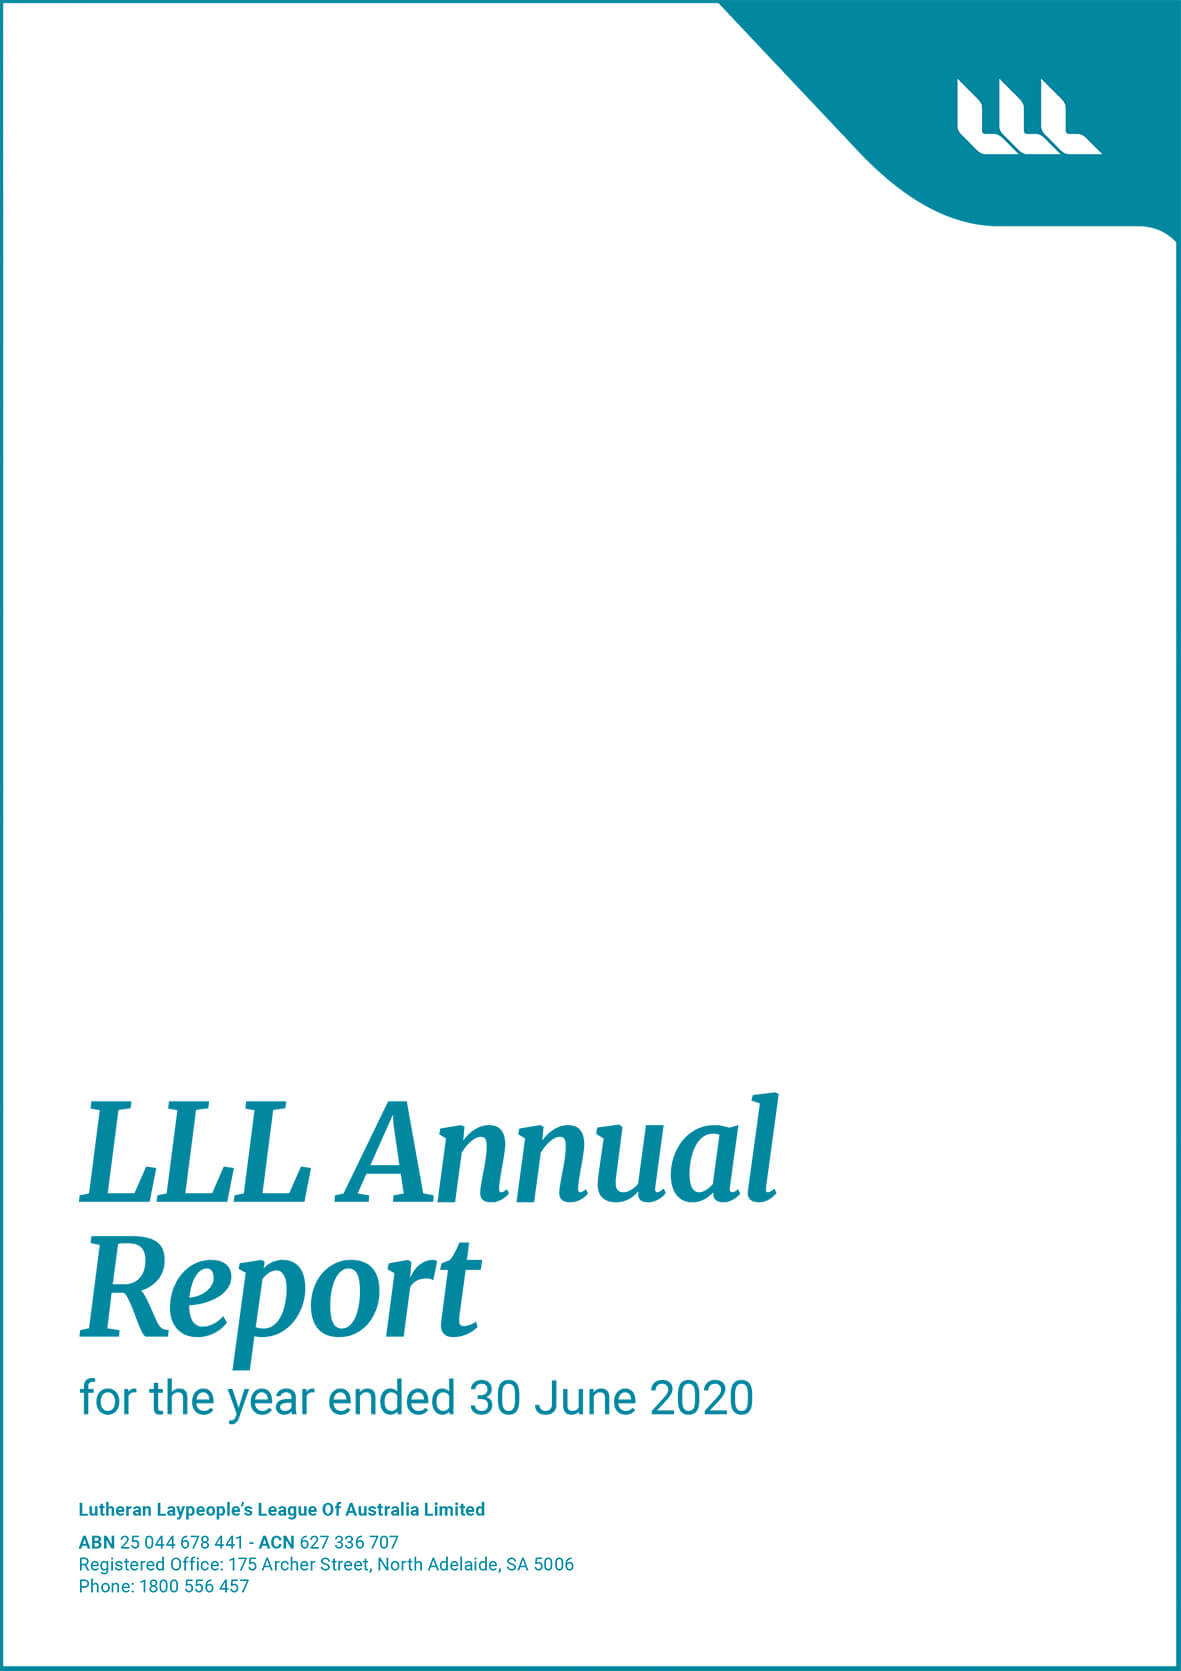 LLL Annual Report 201920